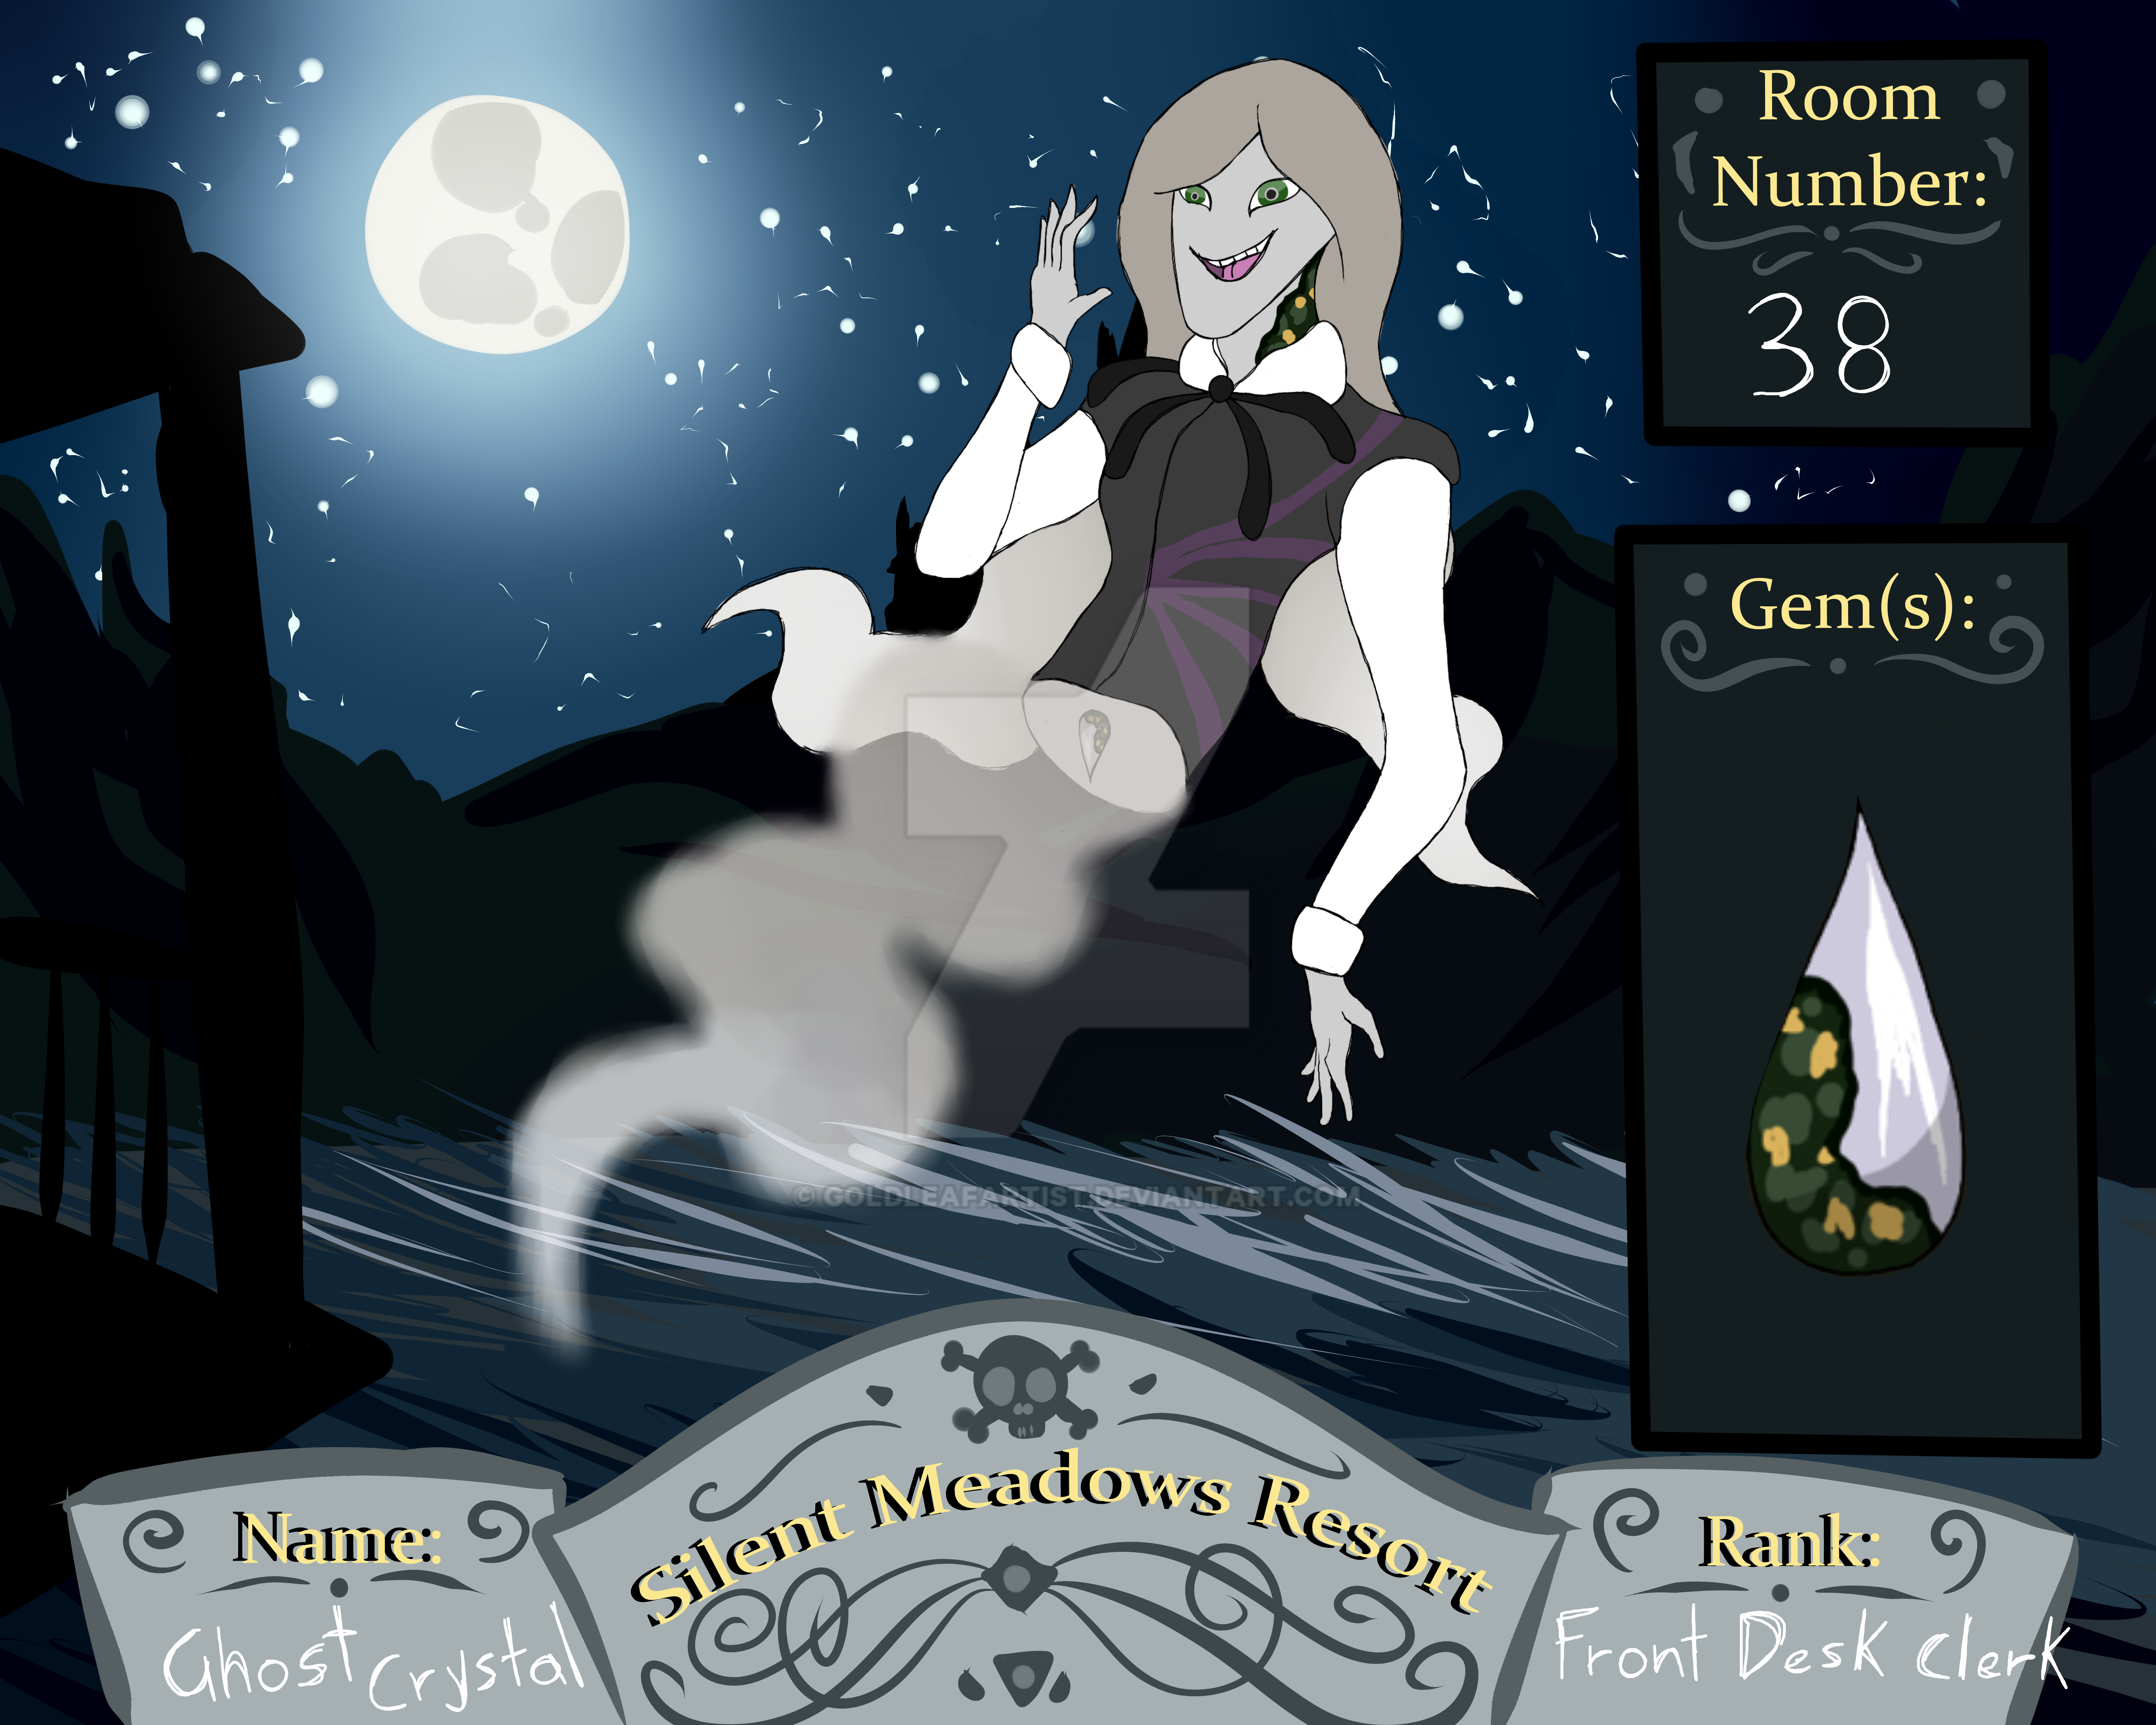 Silent Screech Hotel App: Ghost Crystal by GoldleafArtist on DeviantArt